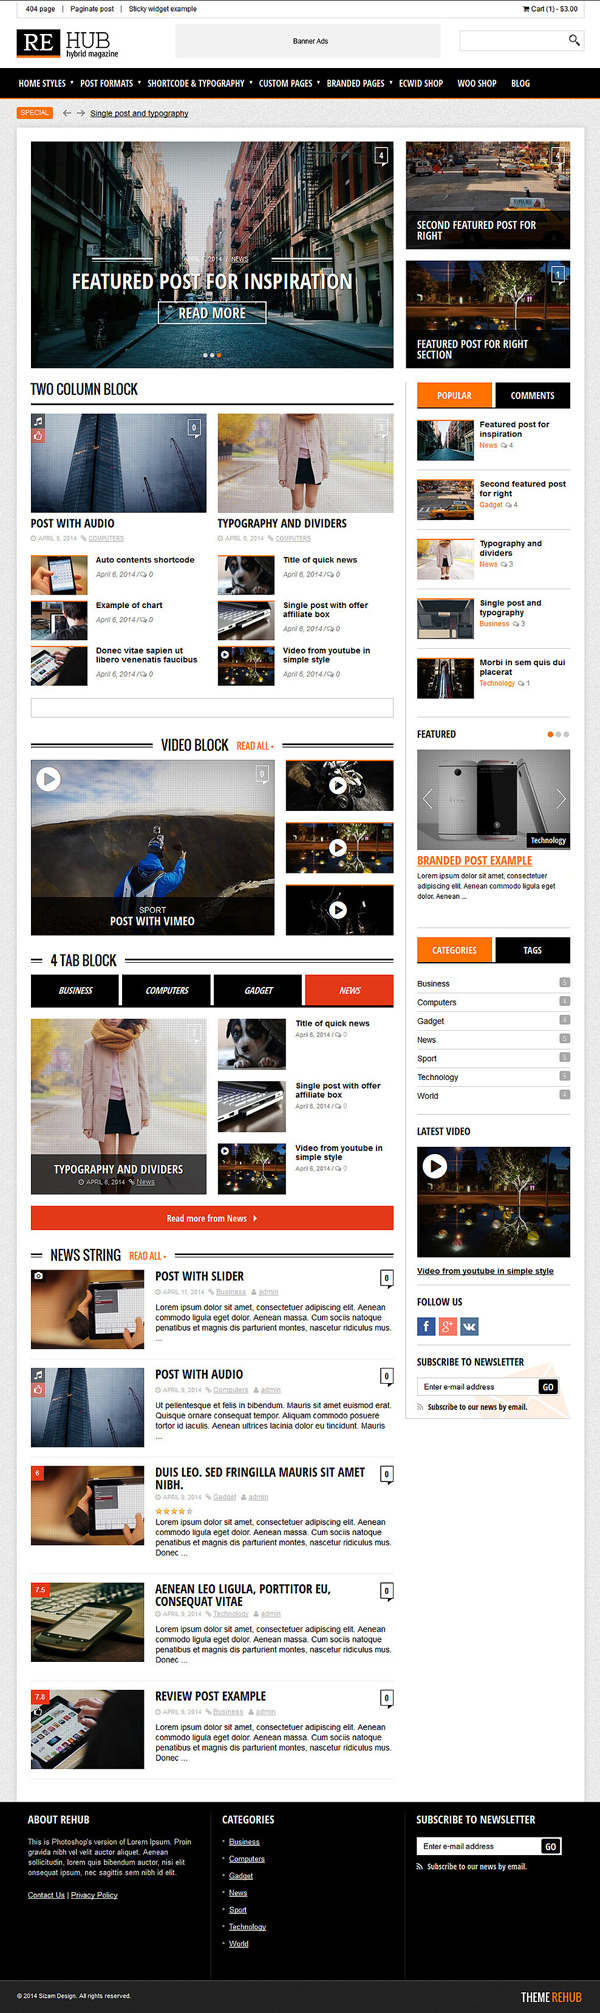 REHub - Hybrid News, Shop, Review, Affiliate WordPress Theme